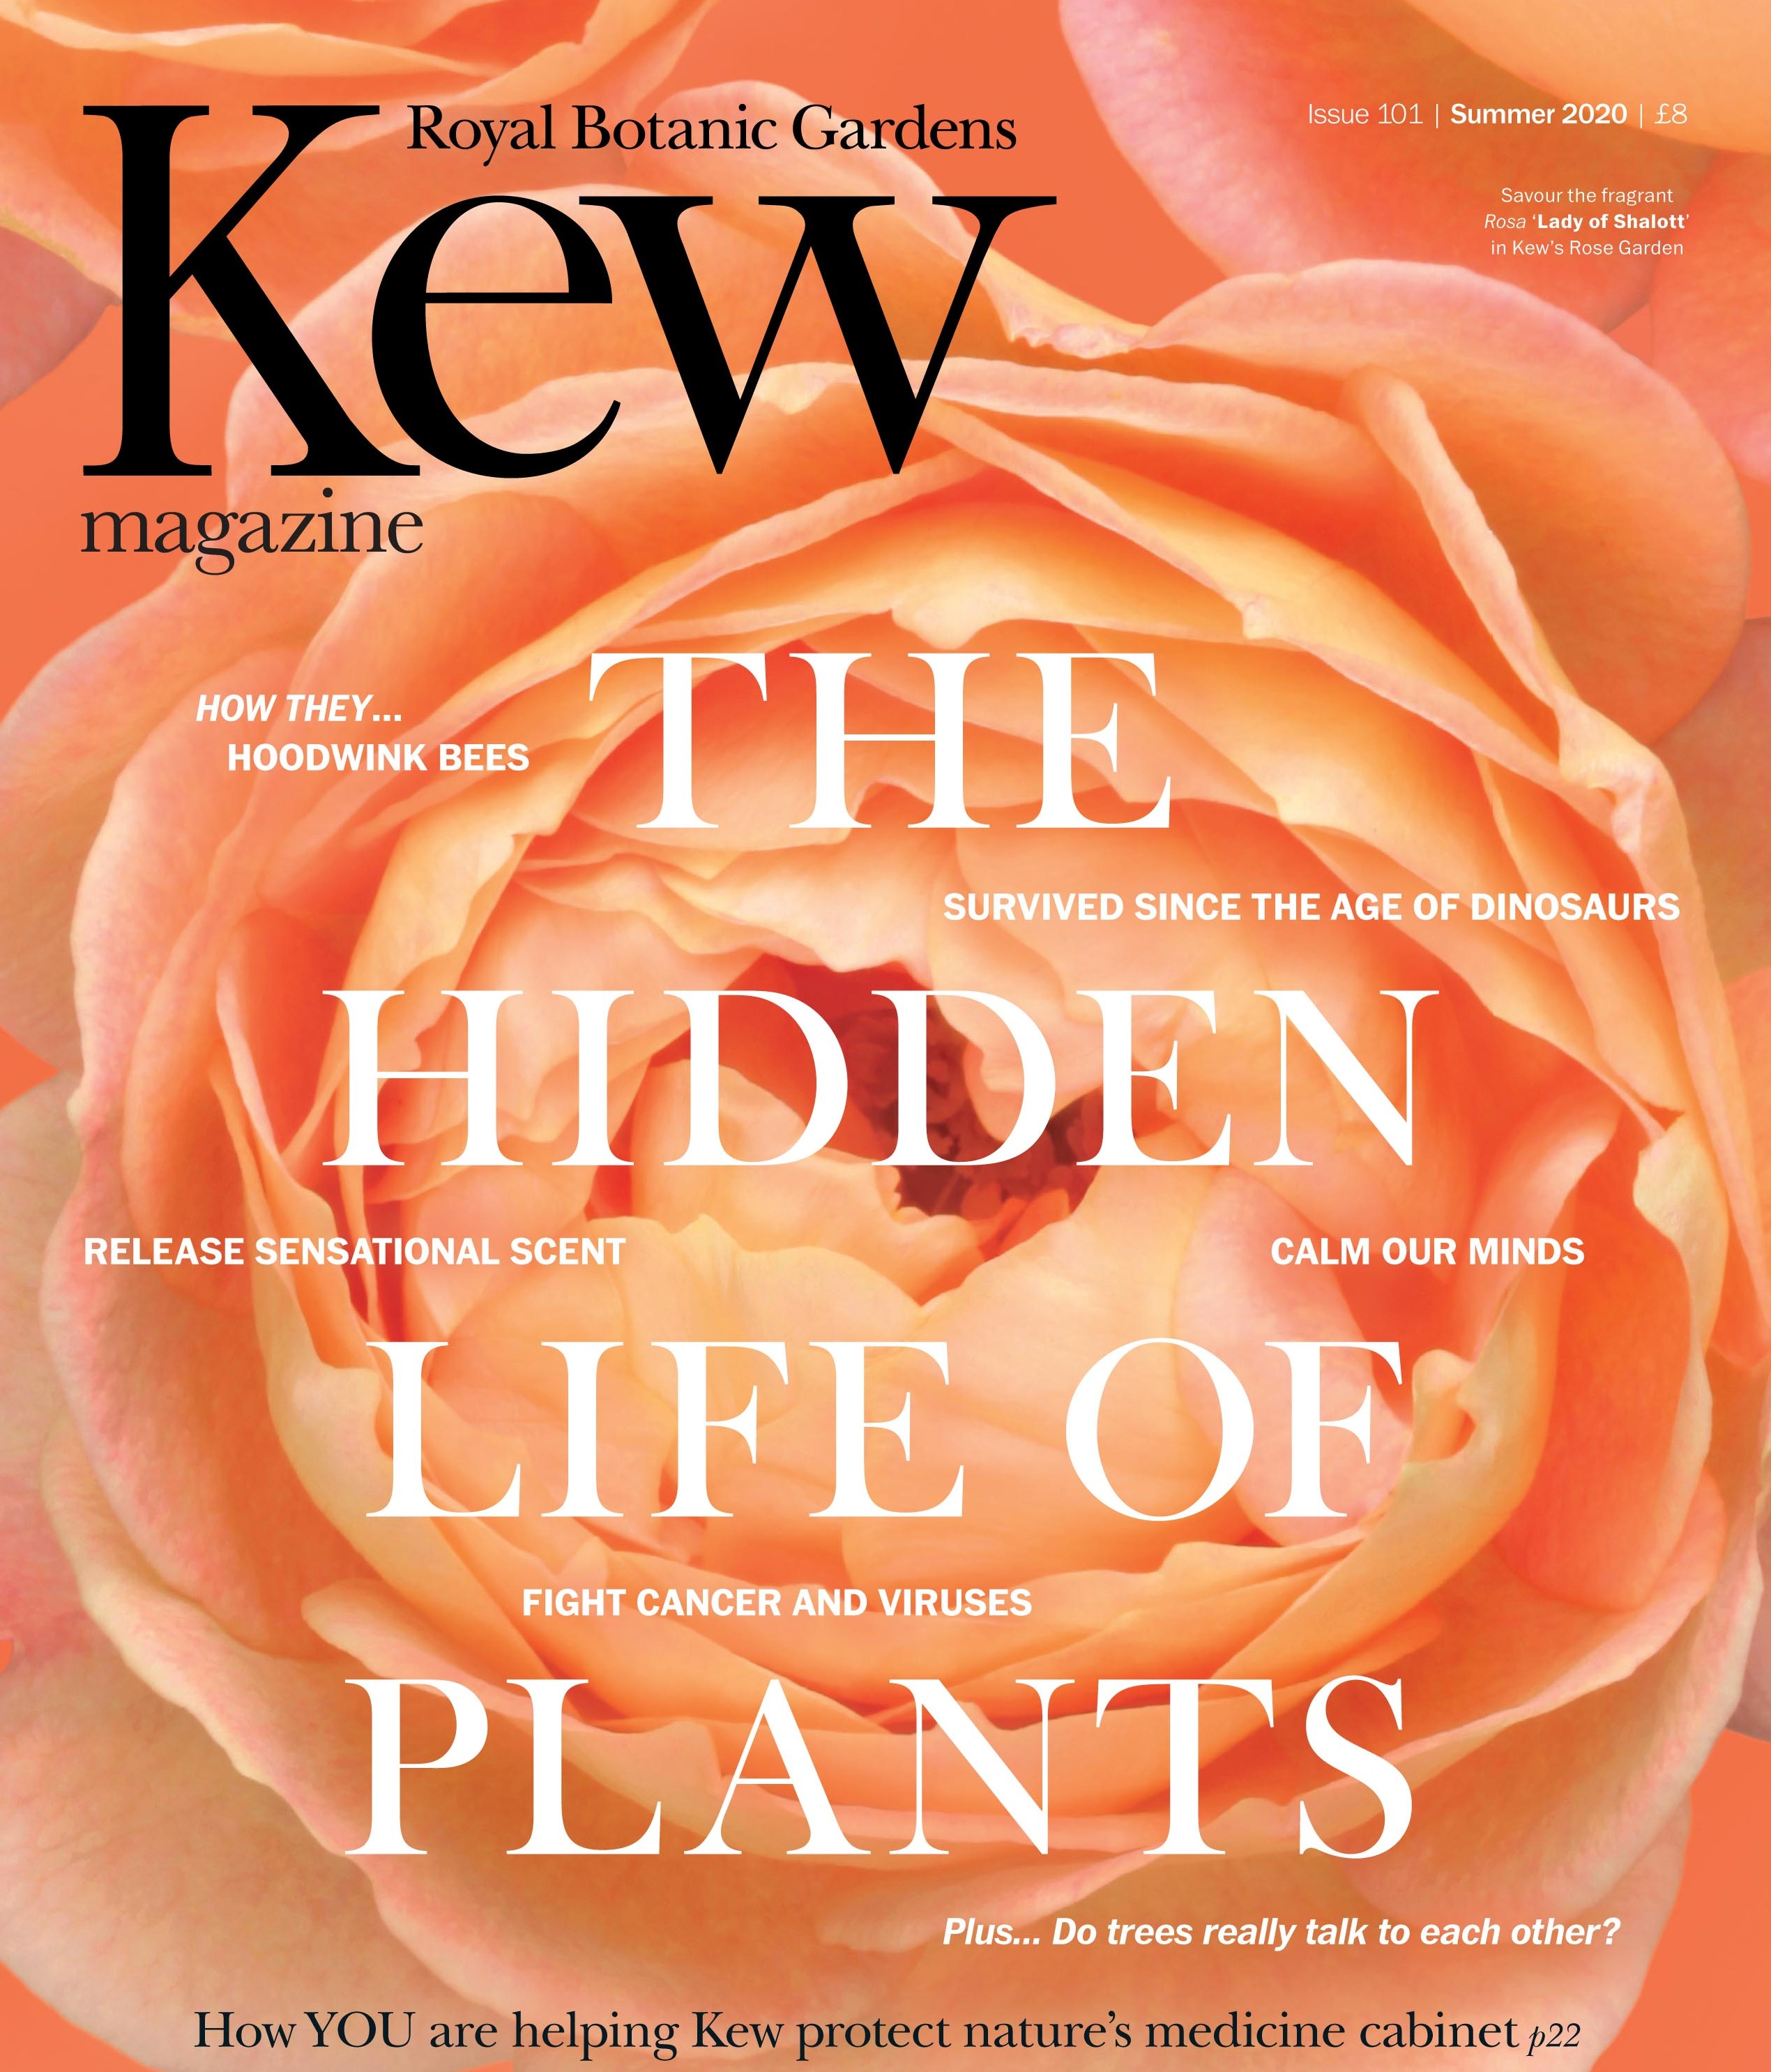 Kew Magazine Summer 2020